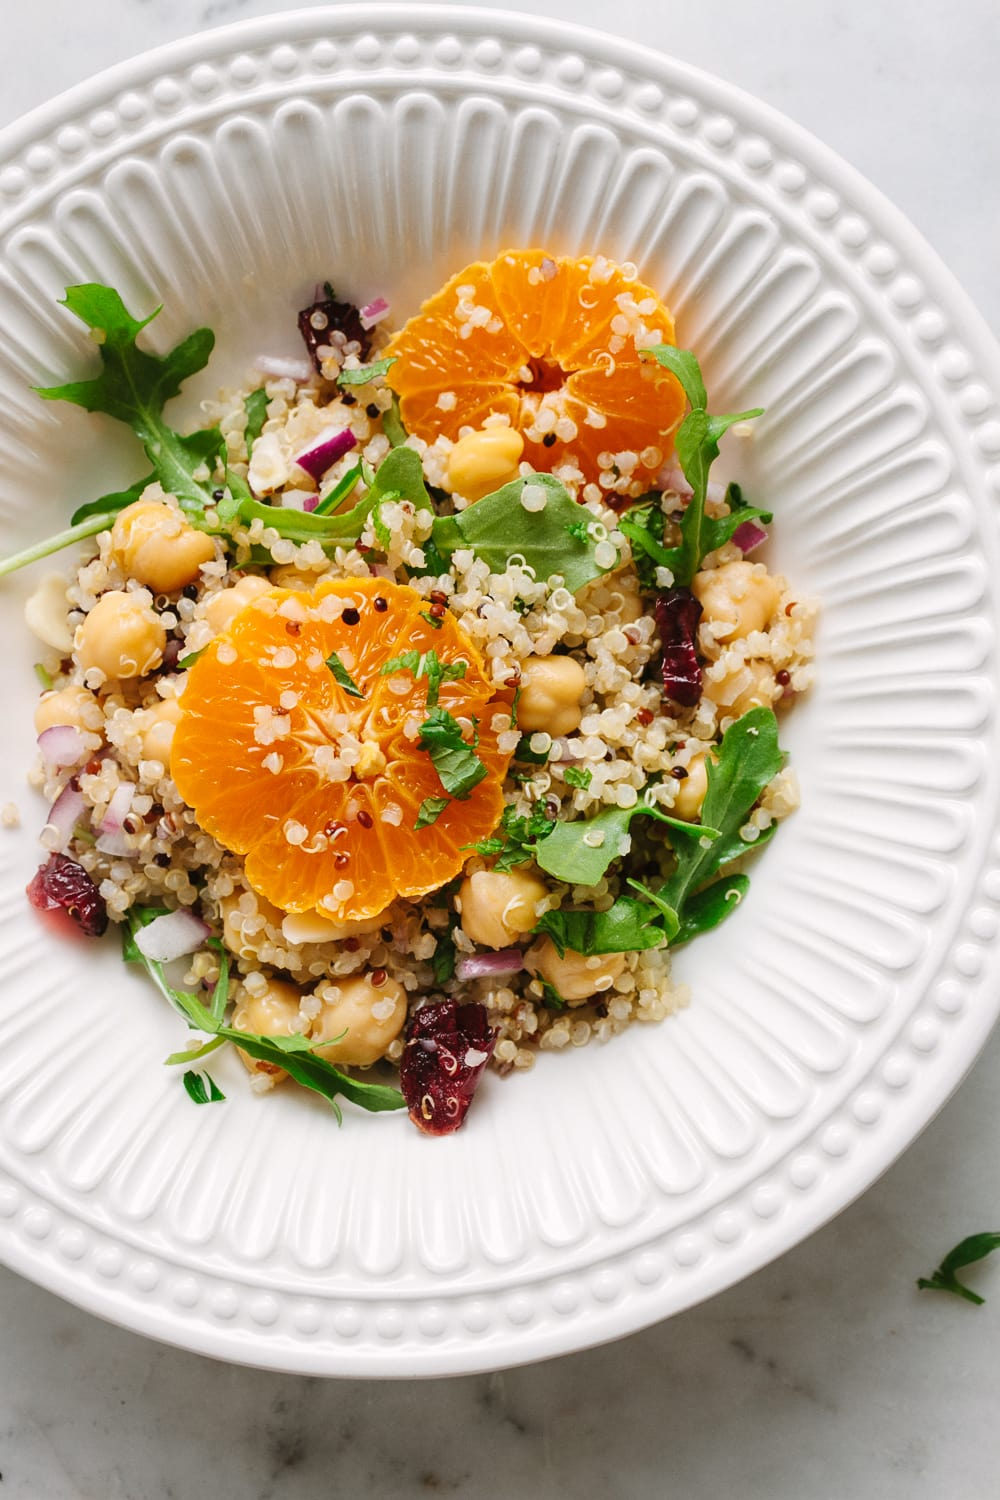 top down view of a serving of quinoa salad in a white bowl.